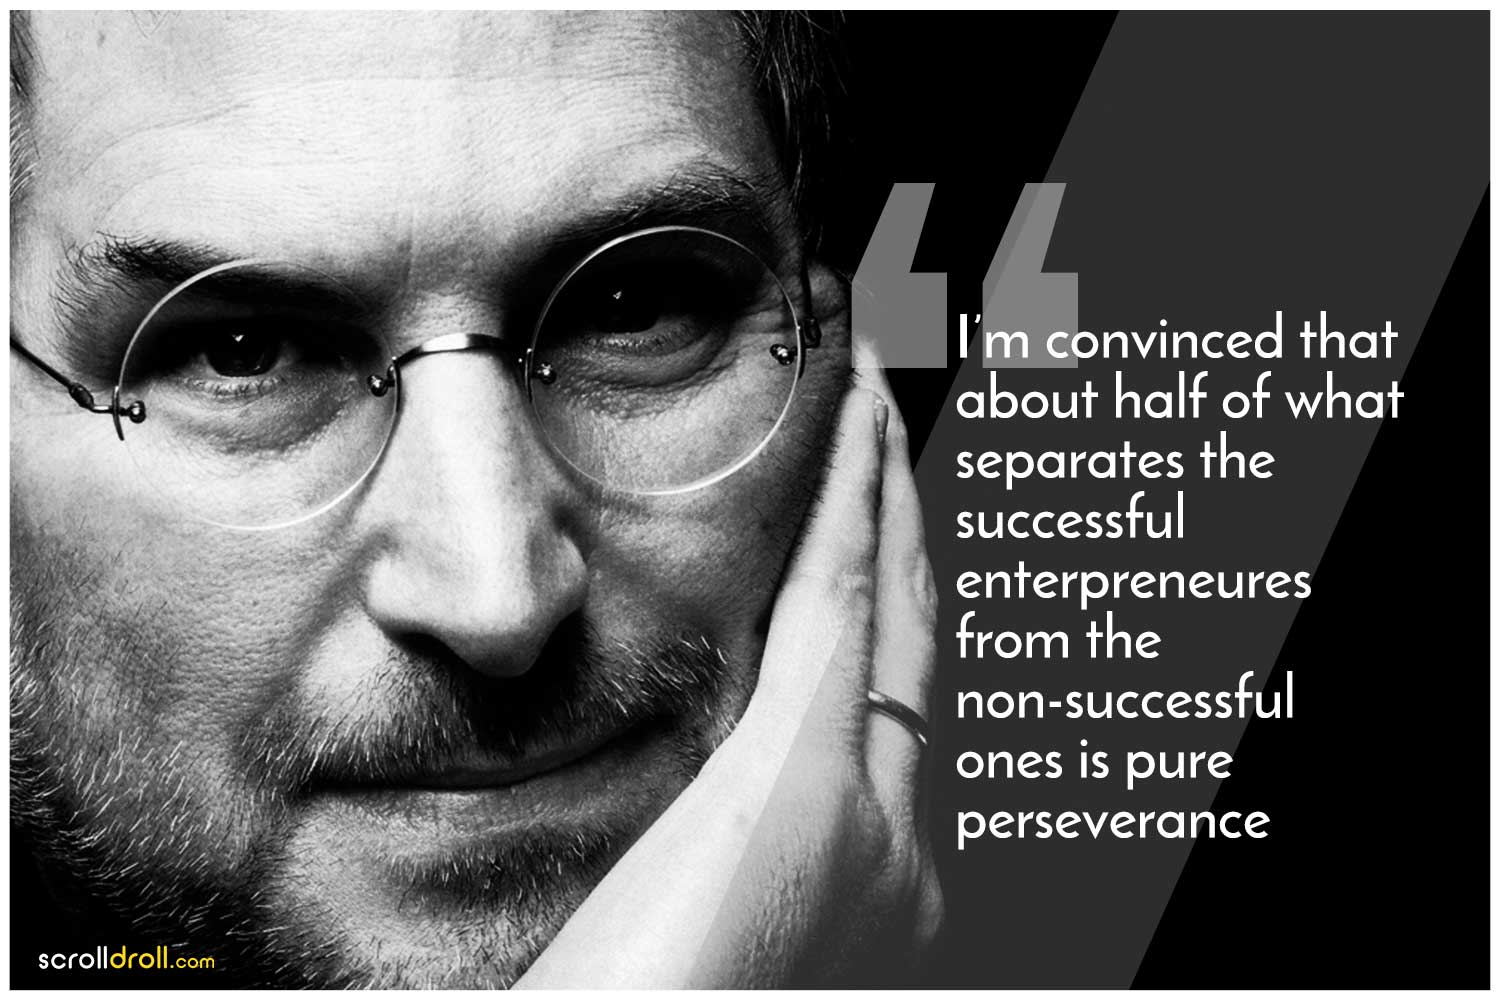 -Steve Jobs Quotes-I'm convinced that about half of what separates the successful enterprenures from the non-successful ones is pure presevance